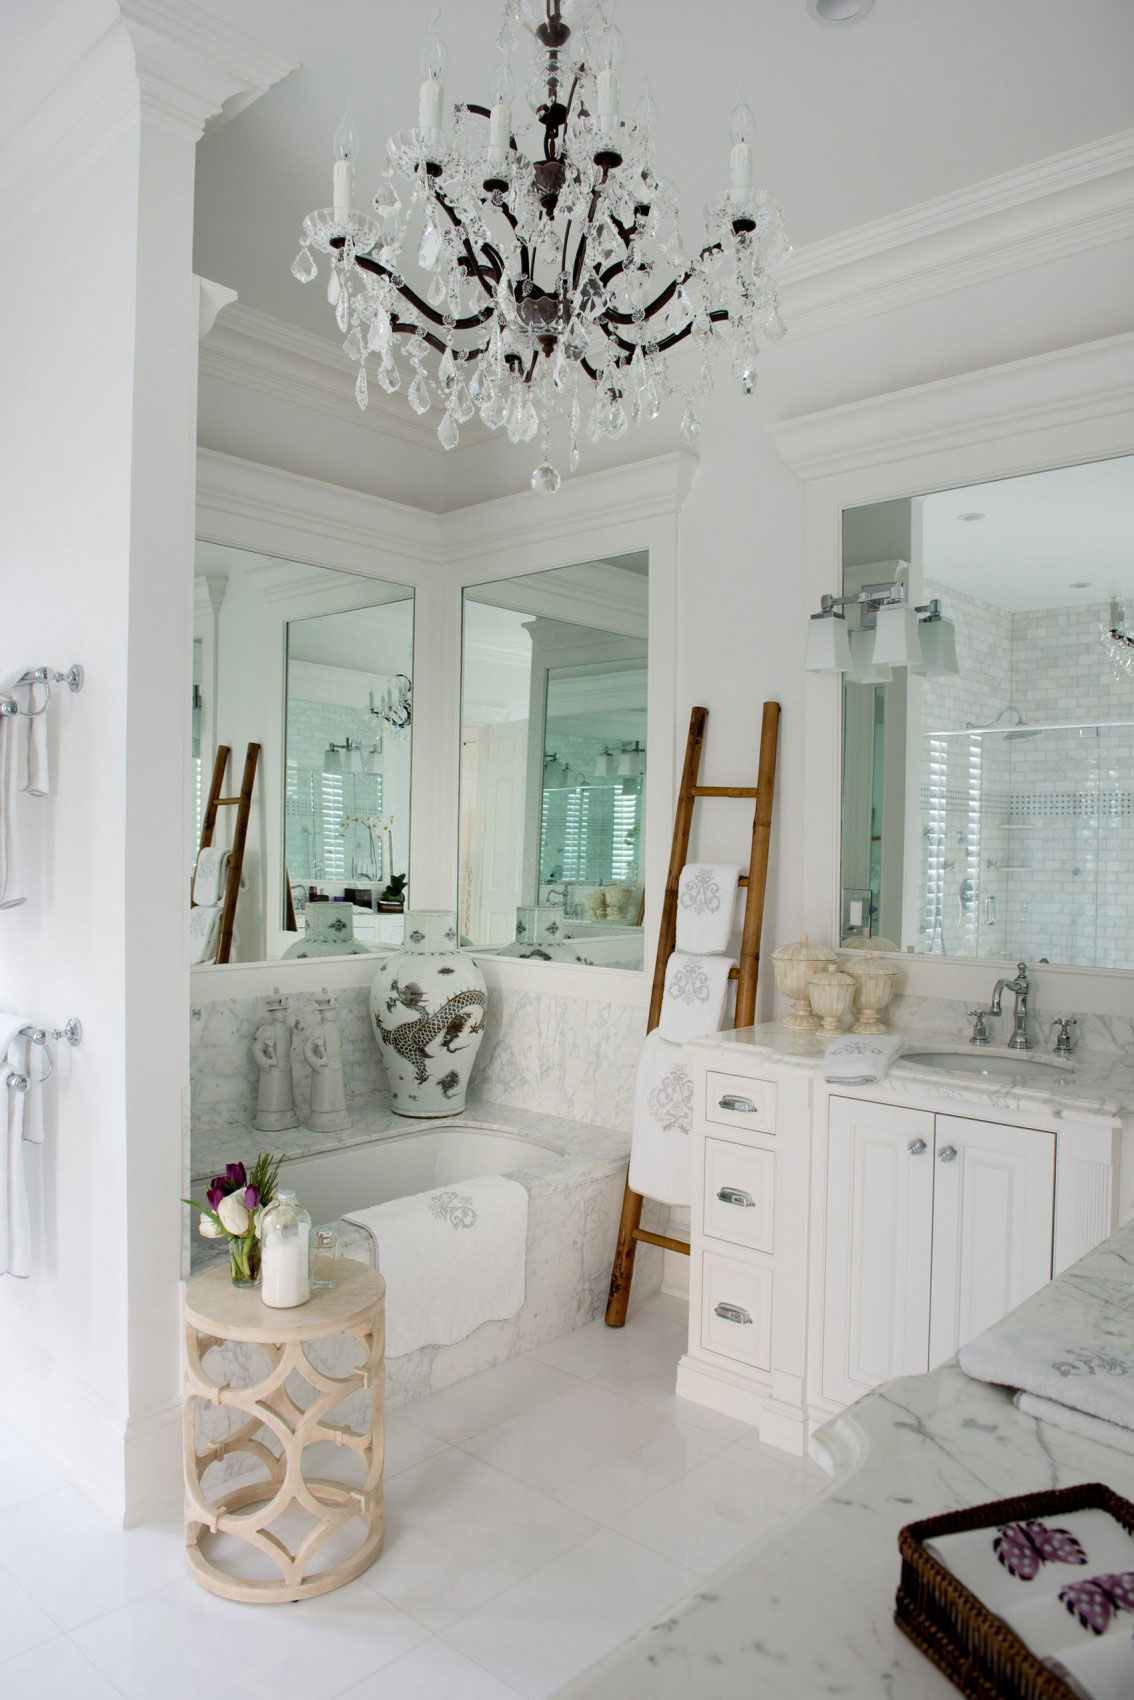 Nice-bathroom-interior-design-worth seeing-9 Nice-bathroom-interior design-worth seeing